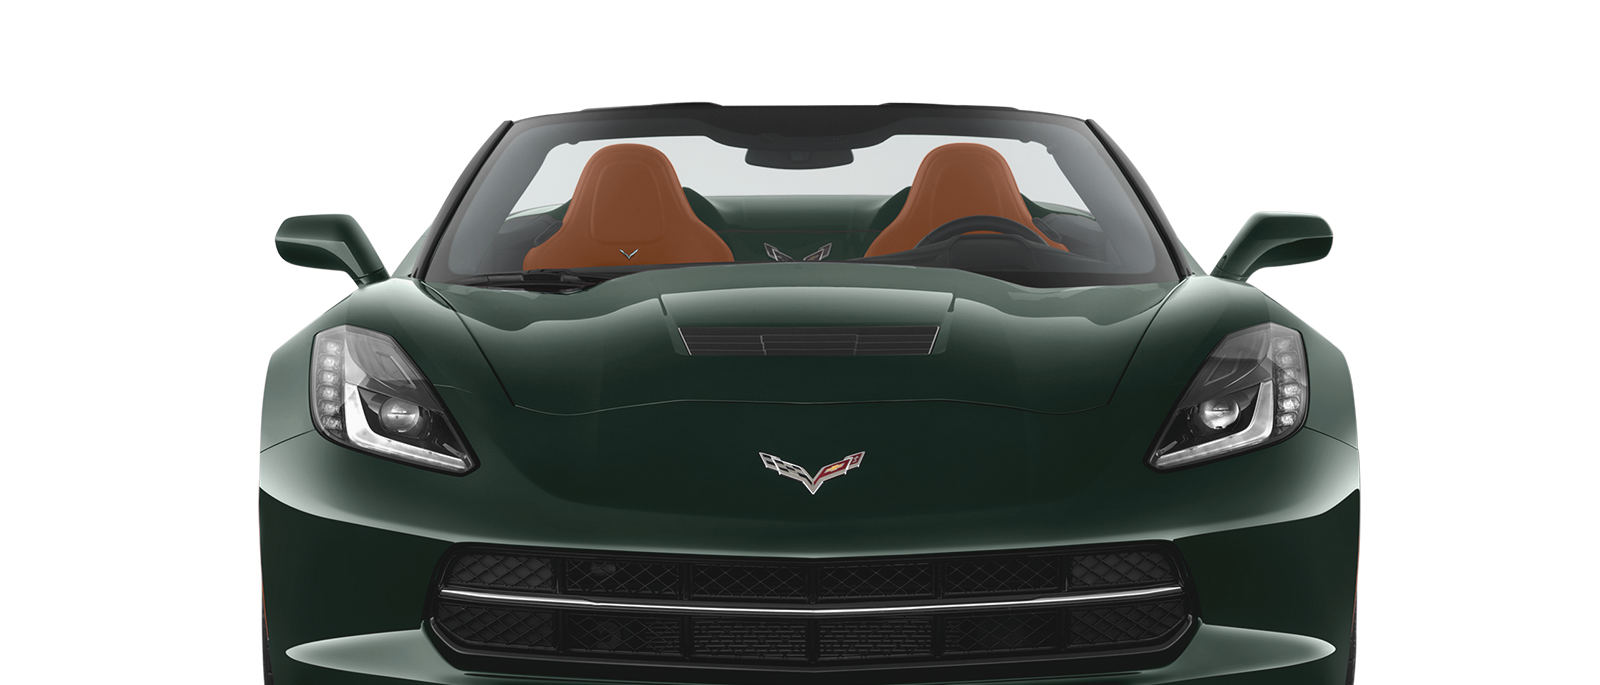 chevrolet corvette stingray car rental exotic car. Black Bedroom Furniture Sets. Home Design Ideas